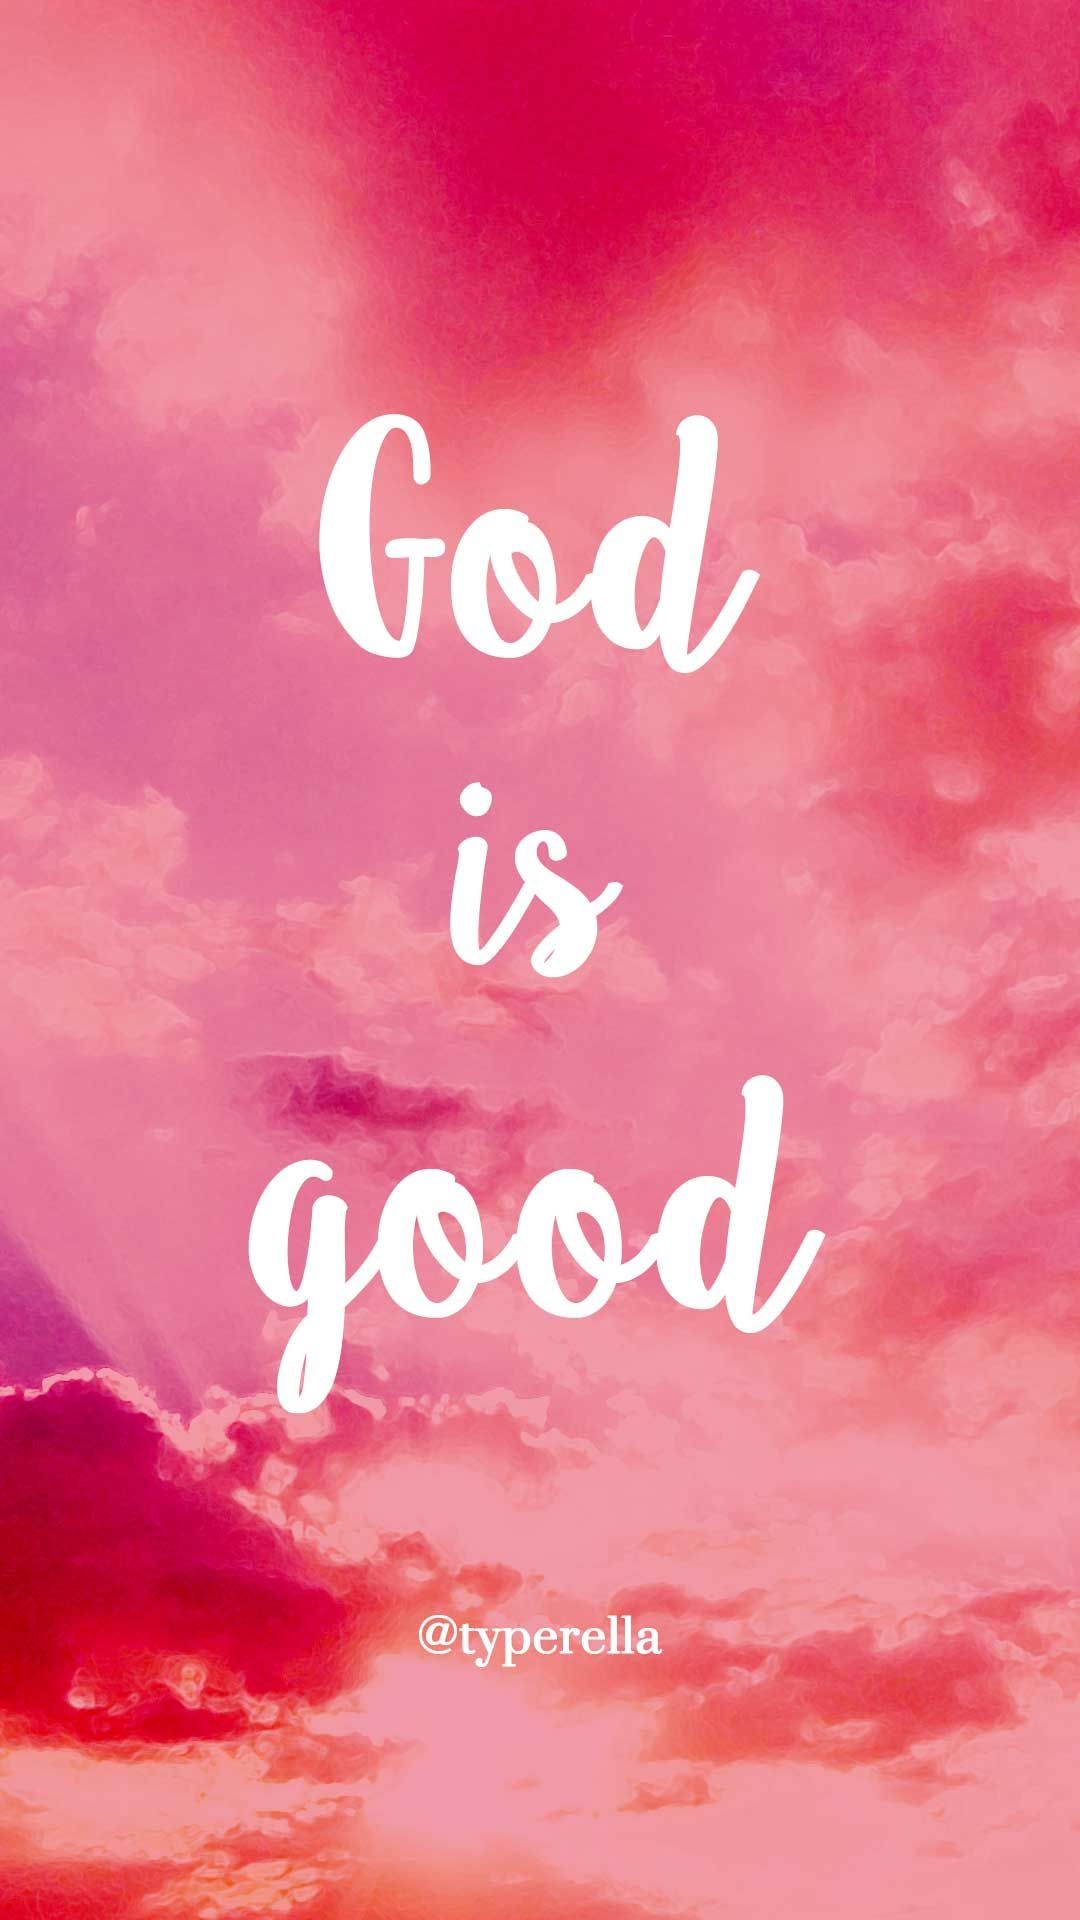 Wallpaper iphone god - Https Typerella Net Free Phone Wallpapers Pray